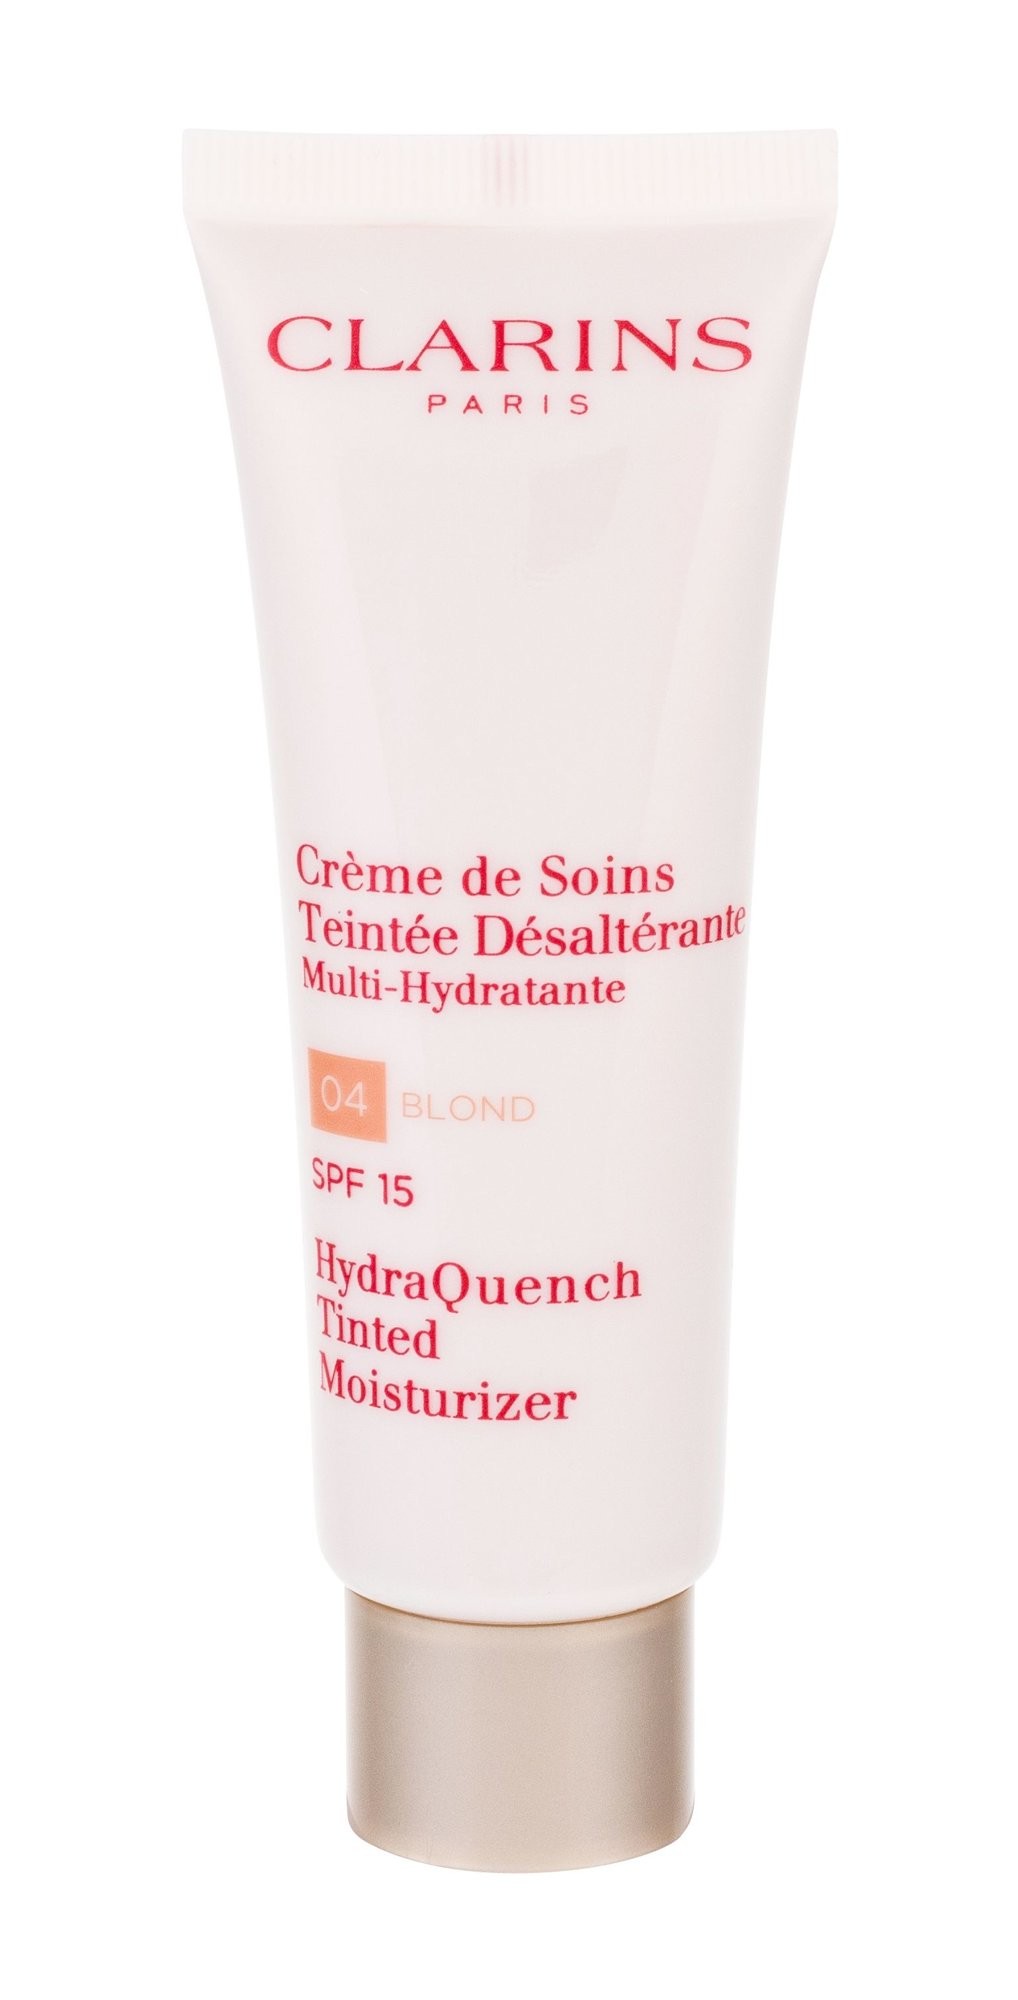 Clarins HydraQuench Cosmetic 50ml 04 Blond